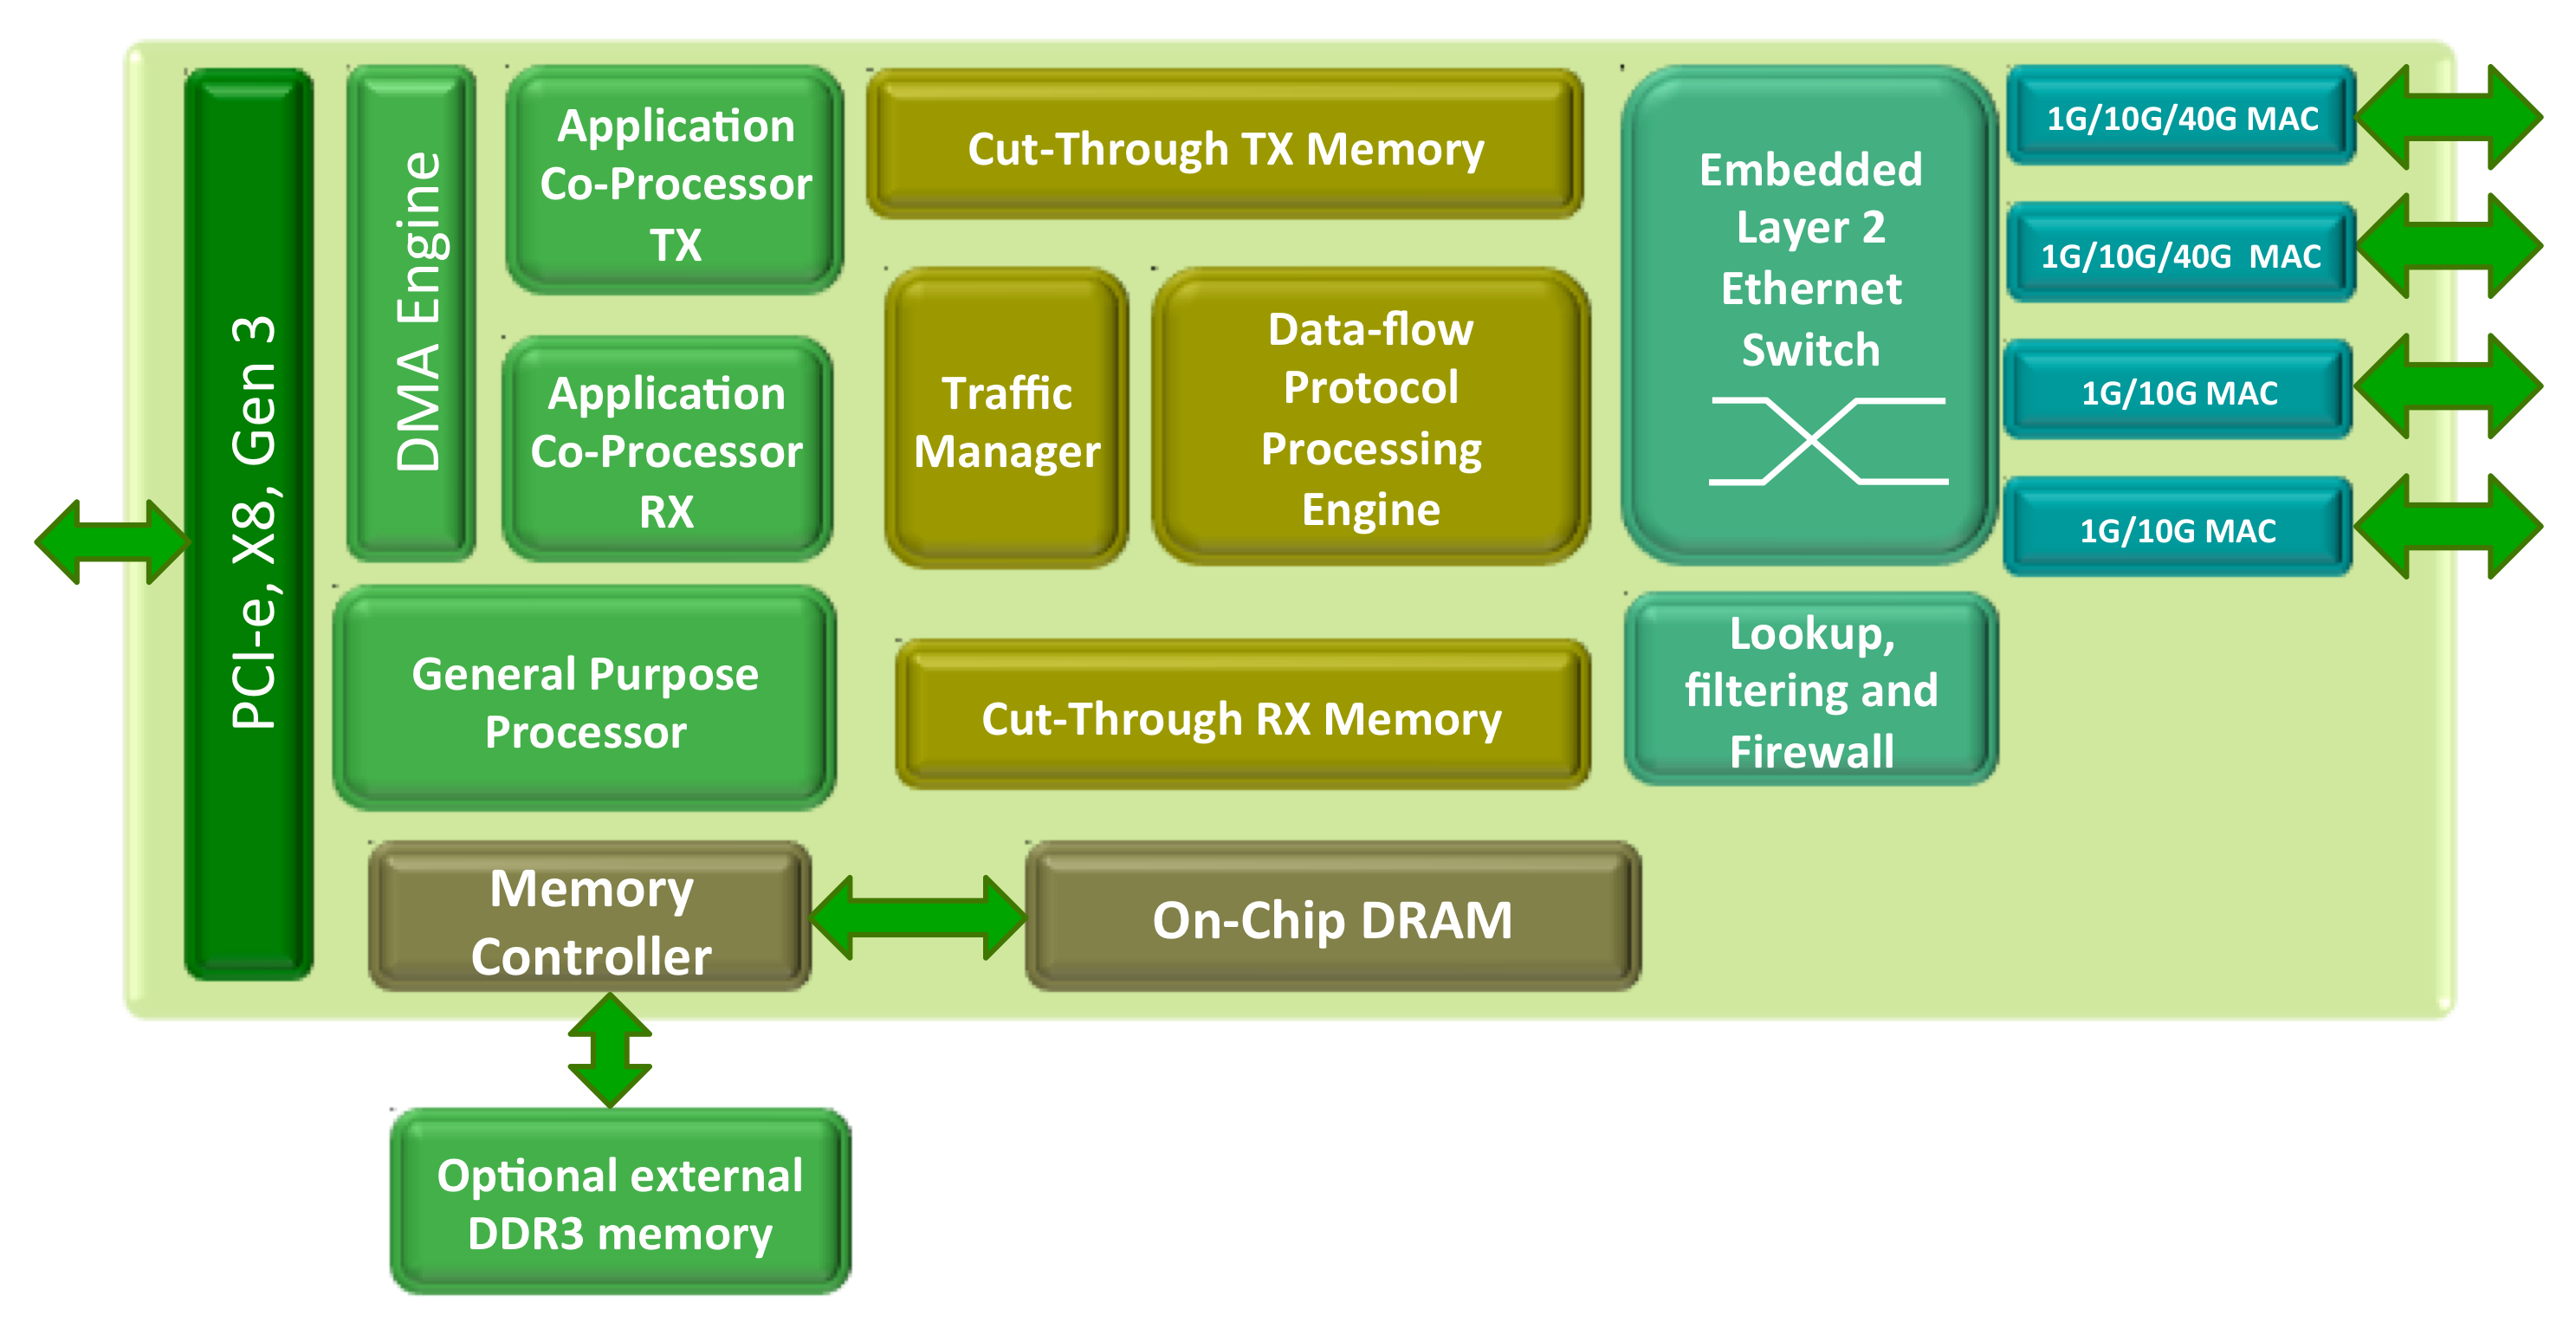 Terminator 5 (T5) ASIC architecture block diagram